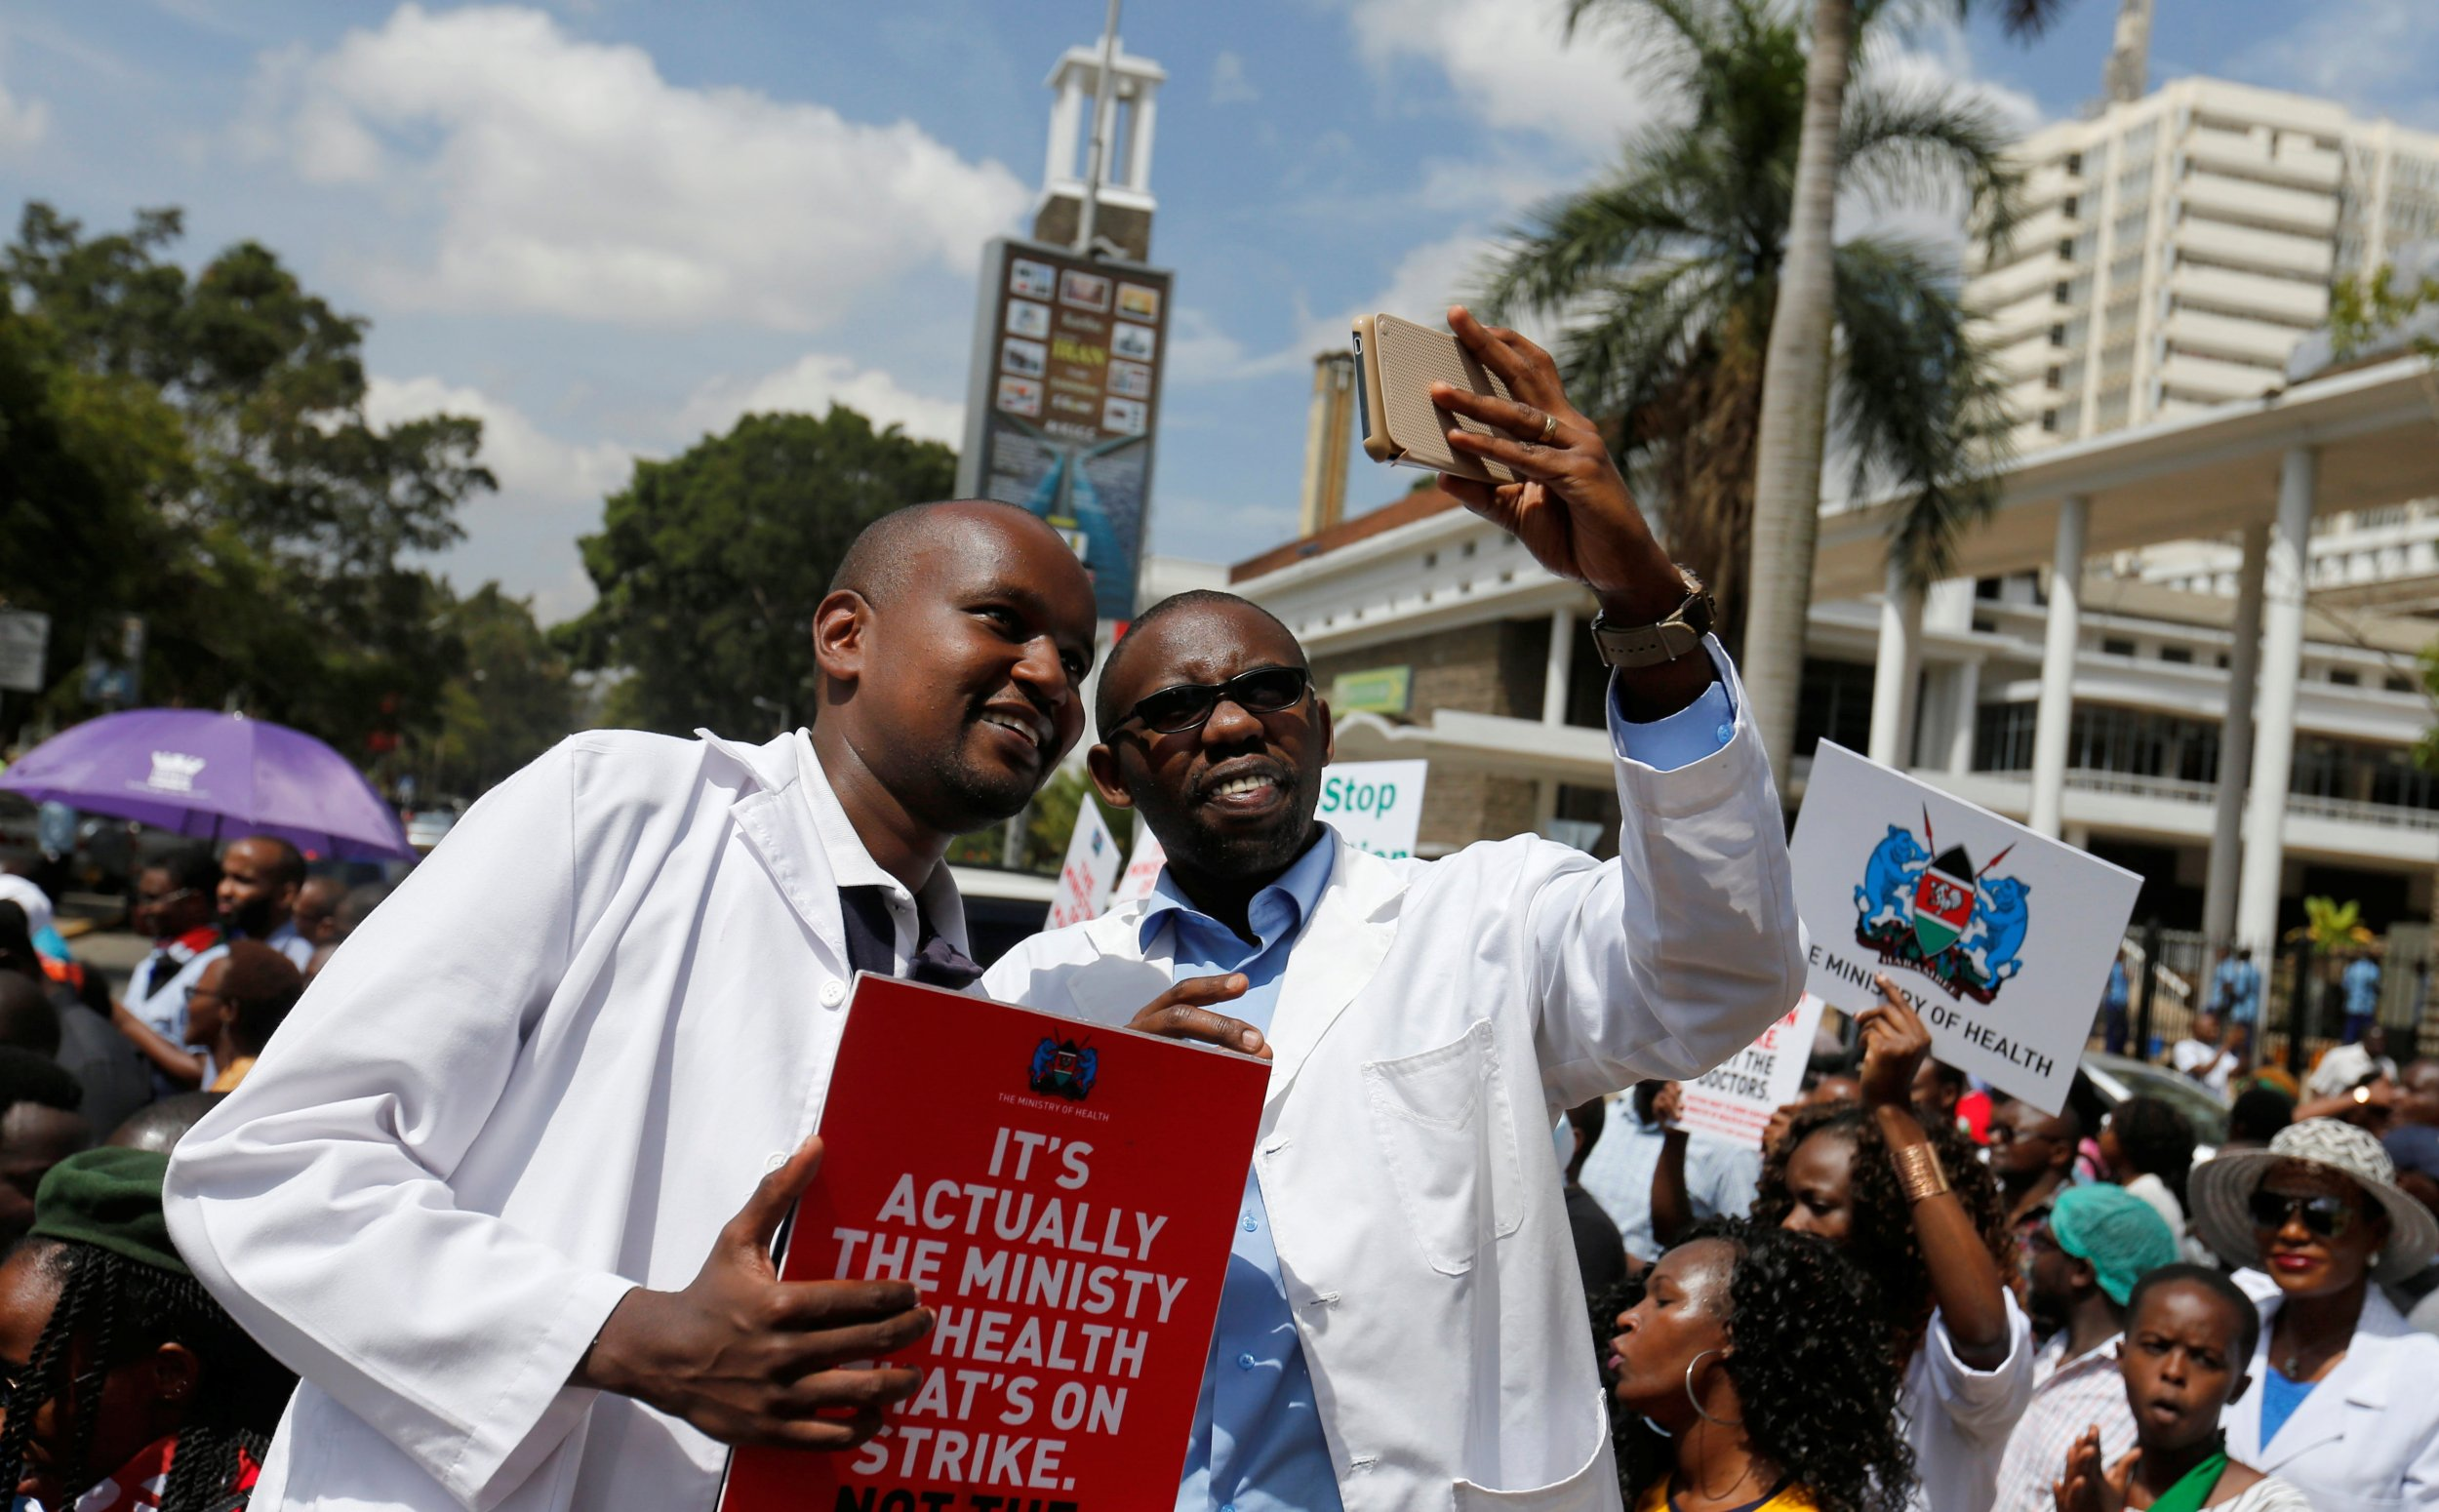 Kenyan President Warns Doctors 'Will be Replaced' Over Strike